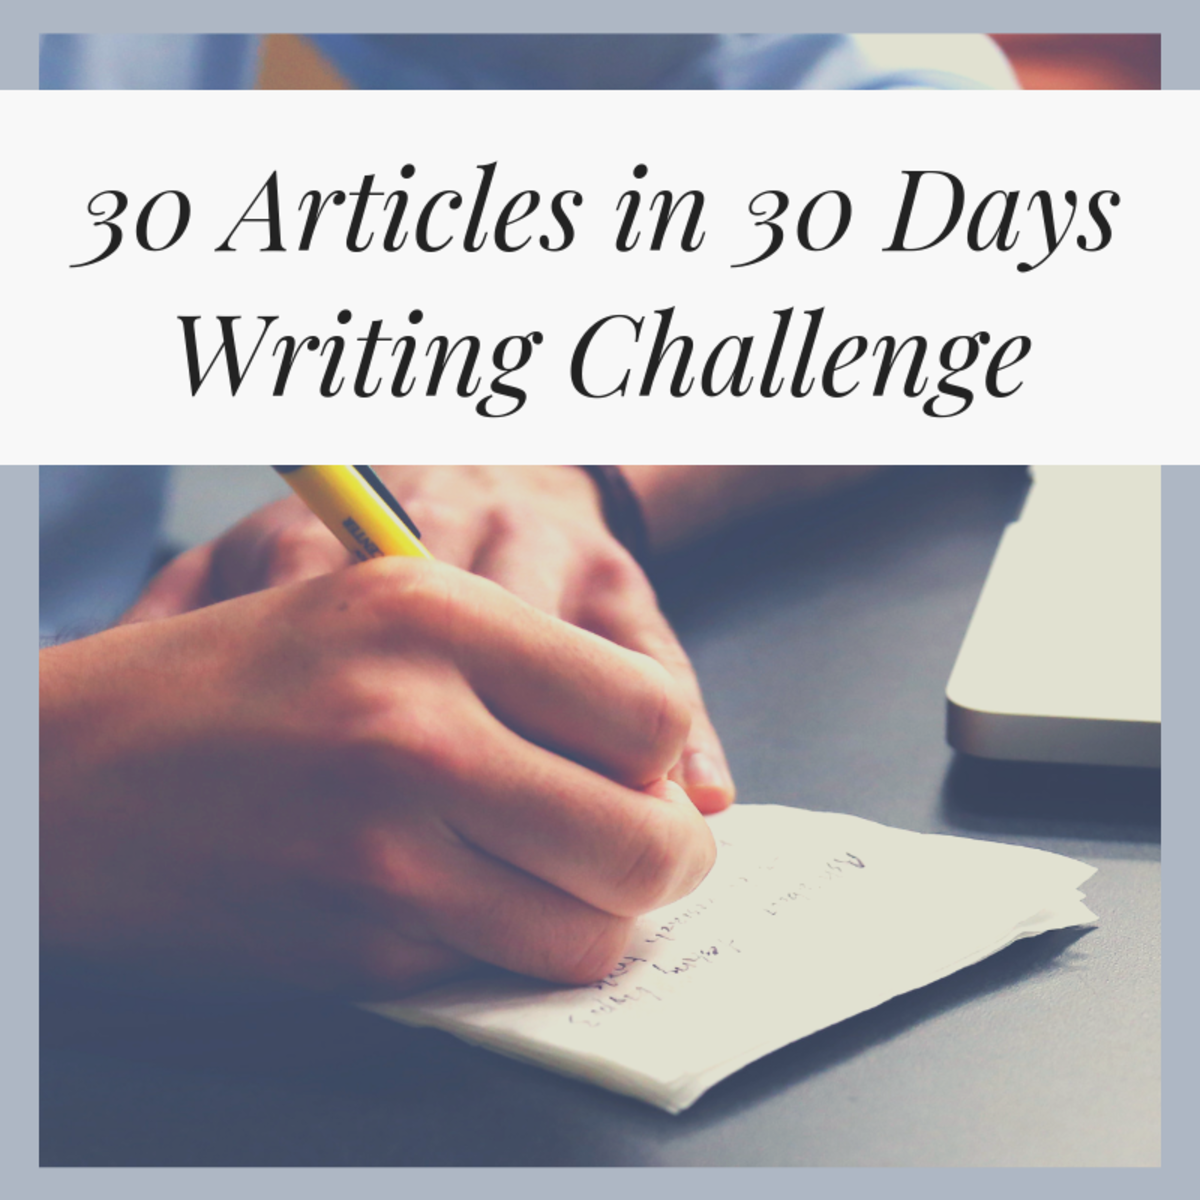 30 Articles in 30 Days Writing Challenge